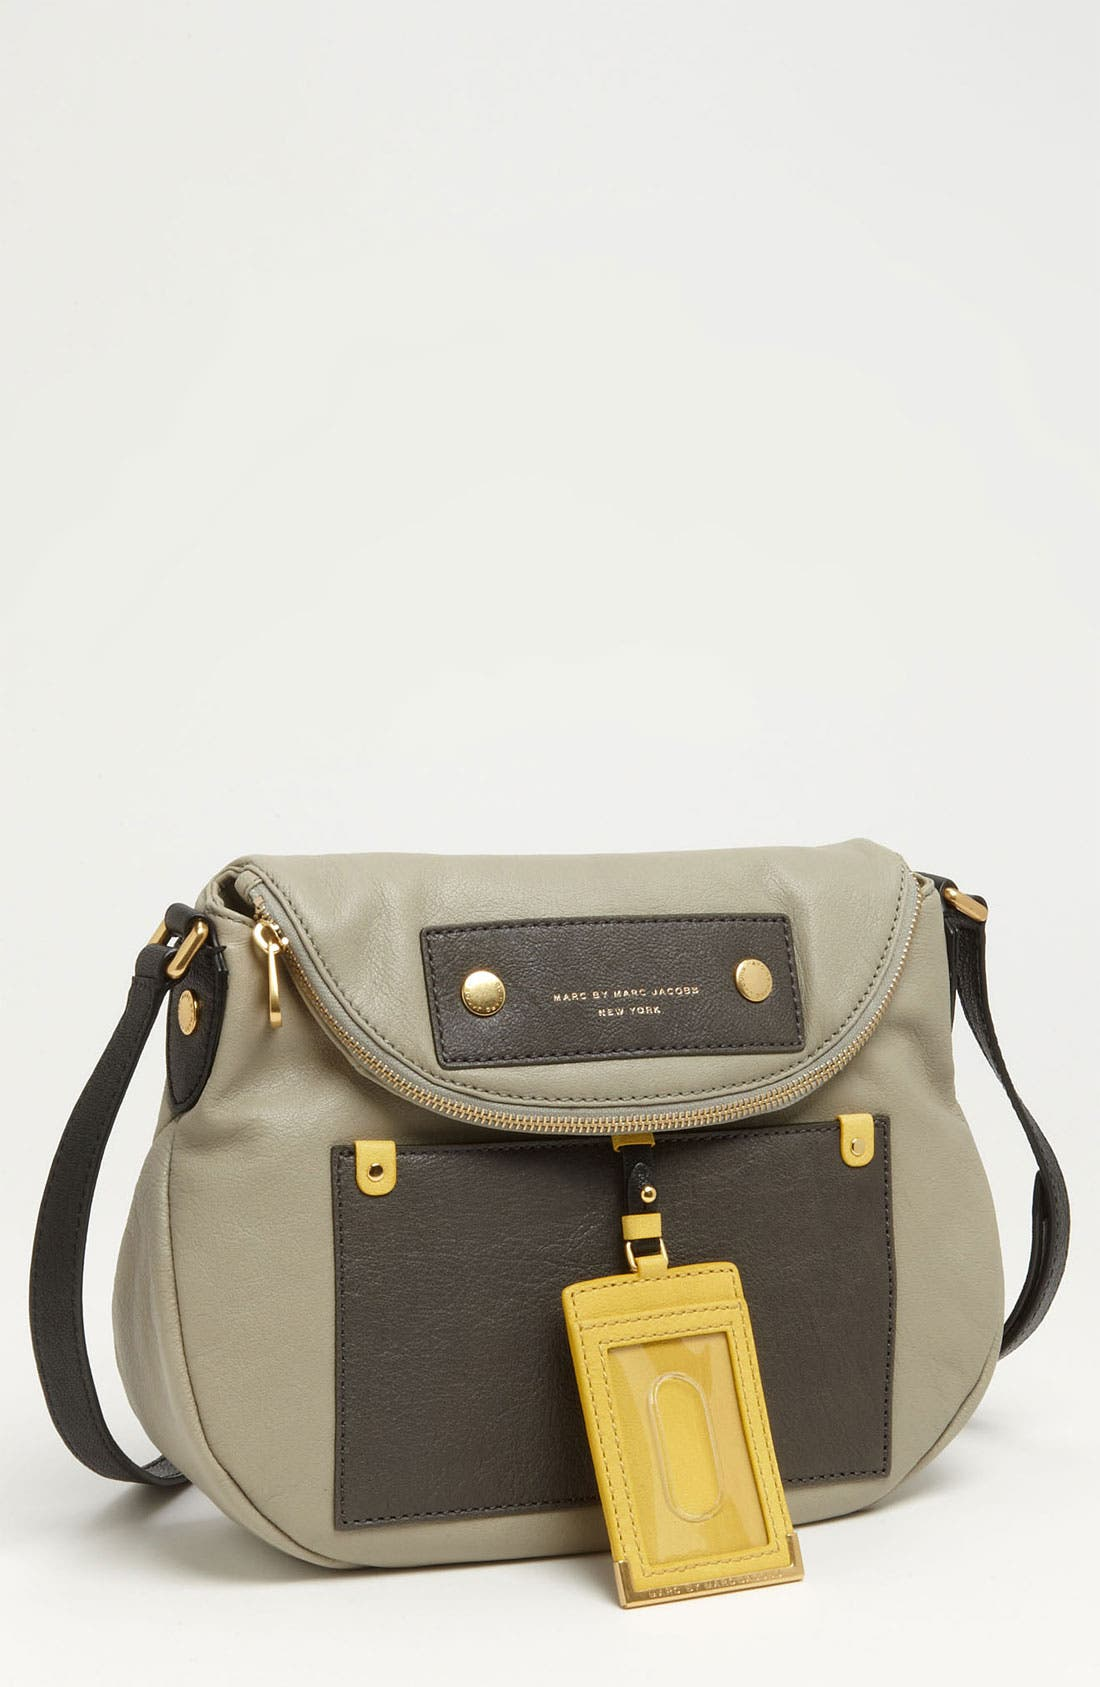 Alternate Image 1 Selected - MARC BY MARC JACOBS 'Preppy Colorblock - Natasha' Leather Crossbody Bag